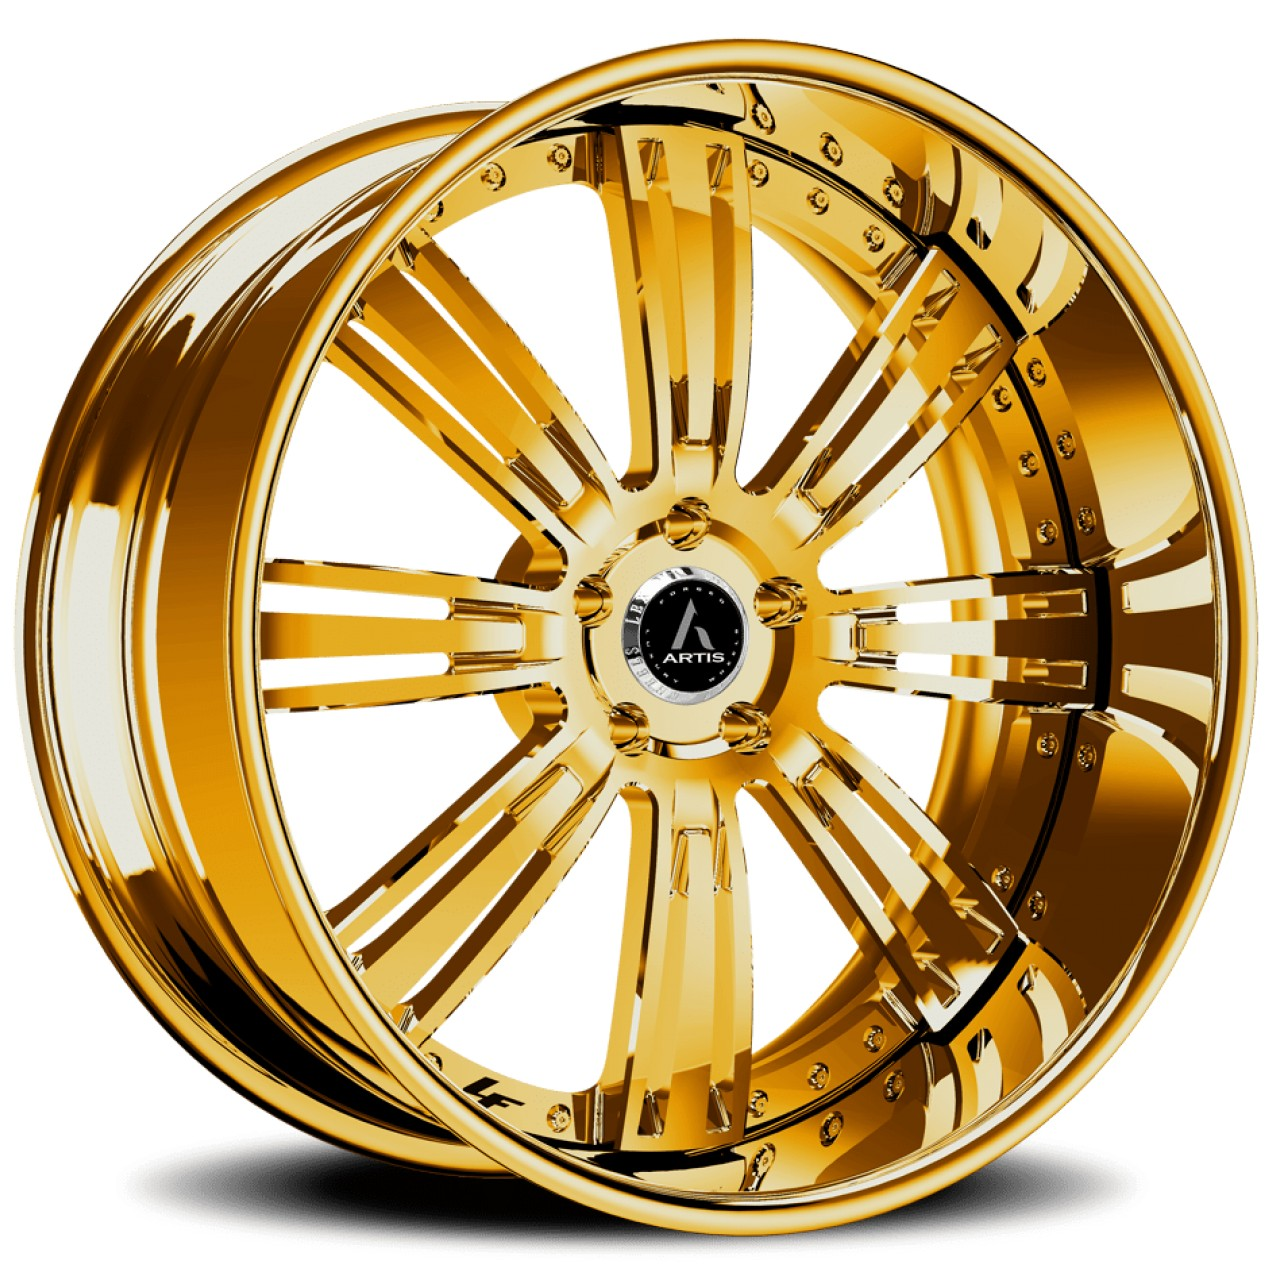 Artis Forged Grino wheel with Gold finish